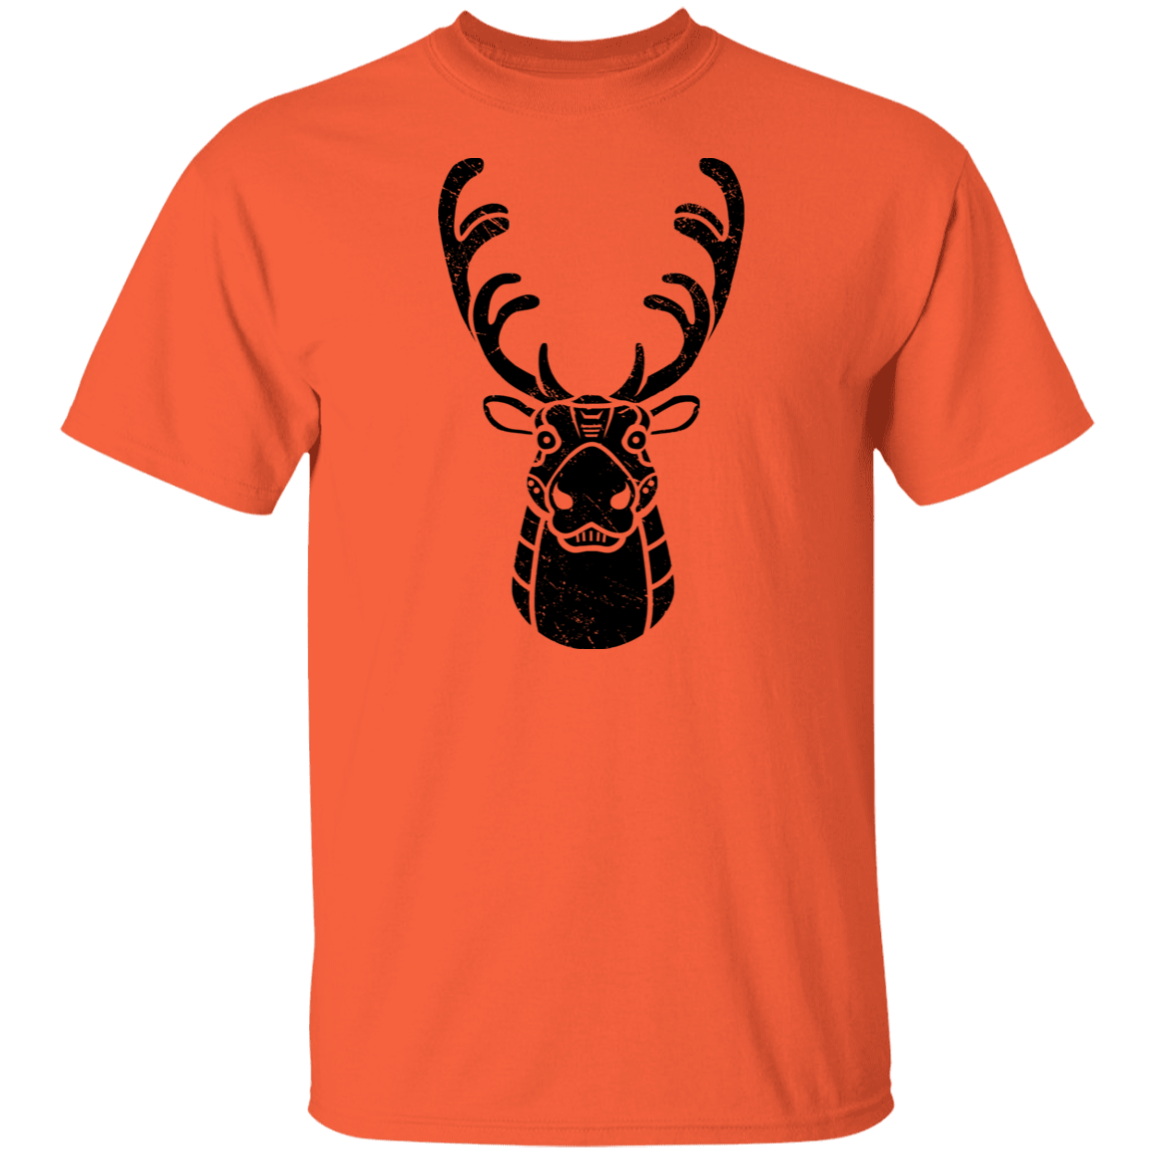 Black Distressed Emblem T-Shirt for Kids (Caribou/Spirit)